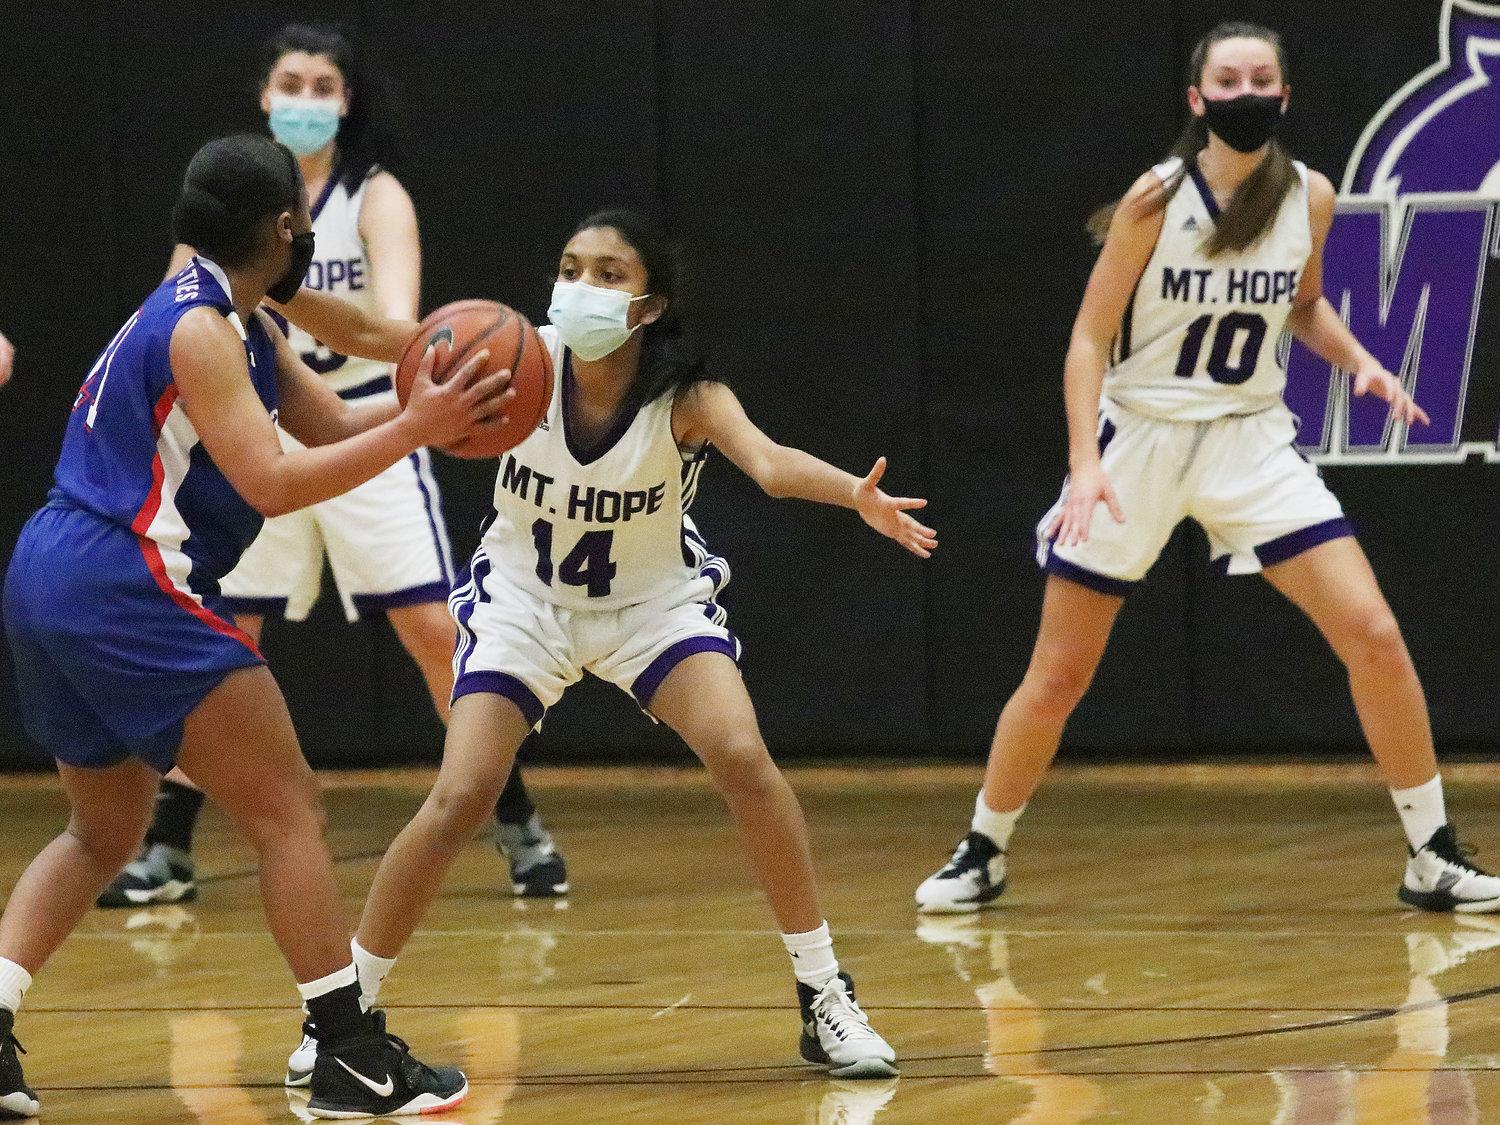 Point guard Junior Aditi Mehta (middle) and teammates Isabel Savinon (left) and Reyn Ferris set up on defense.